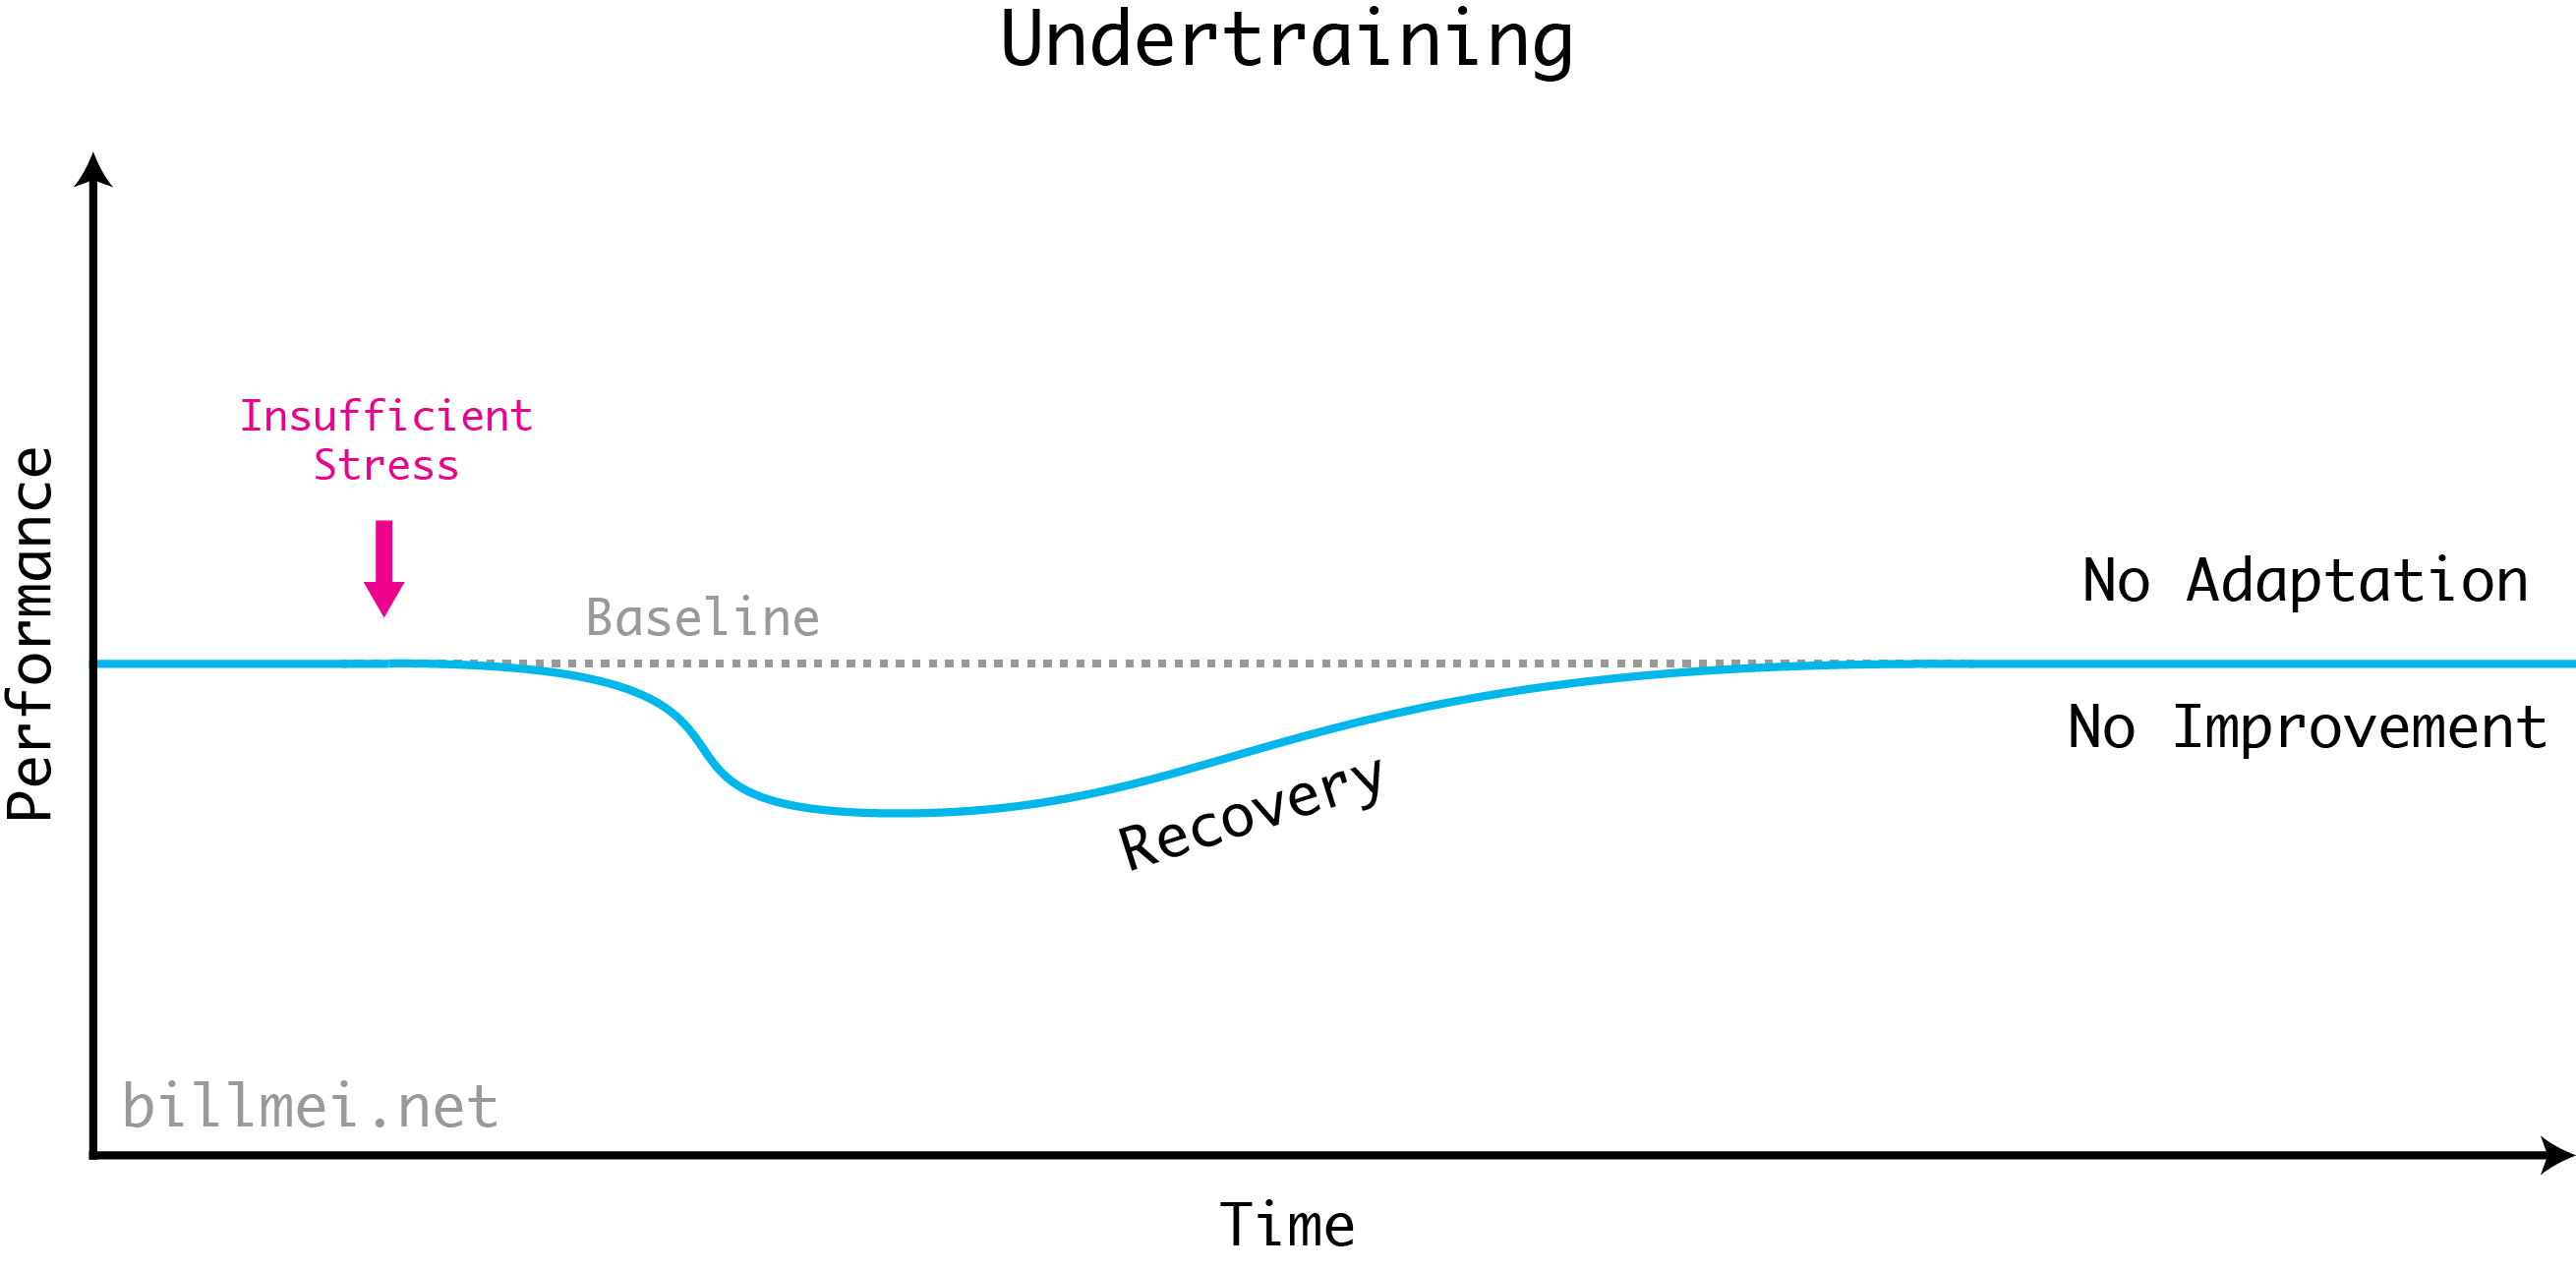 Undertraining in the Stress Recovery Adaptation (SRA) cycle. Insufficient stress creates a small drop in performance, but when you recover there is no additional adaptation above baseline. Hence, there is no performance improvement.